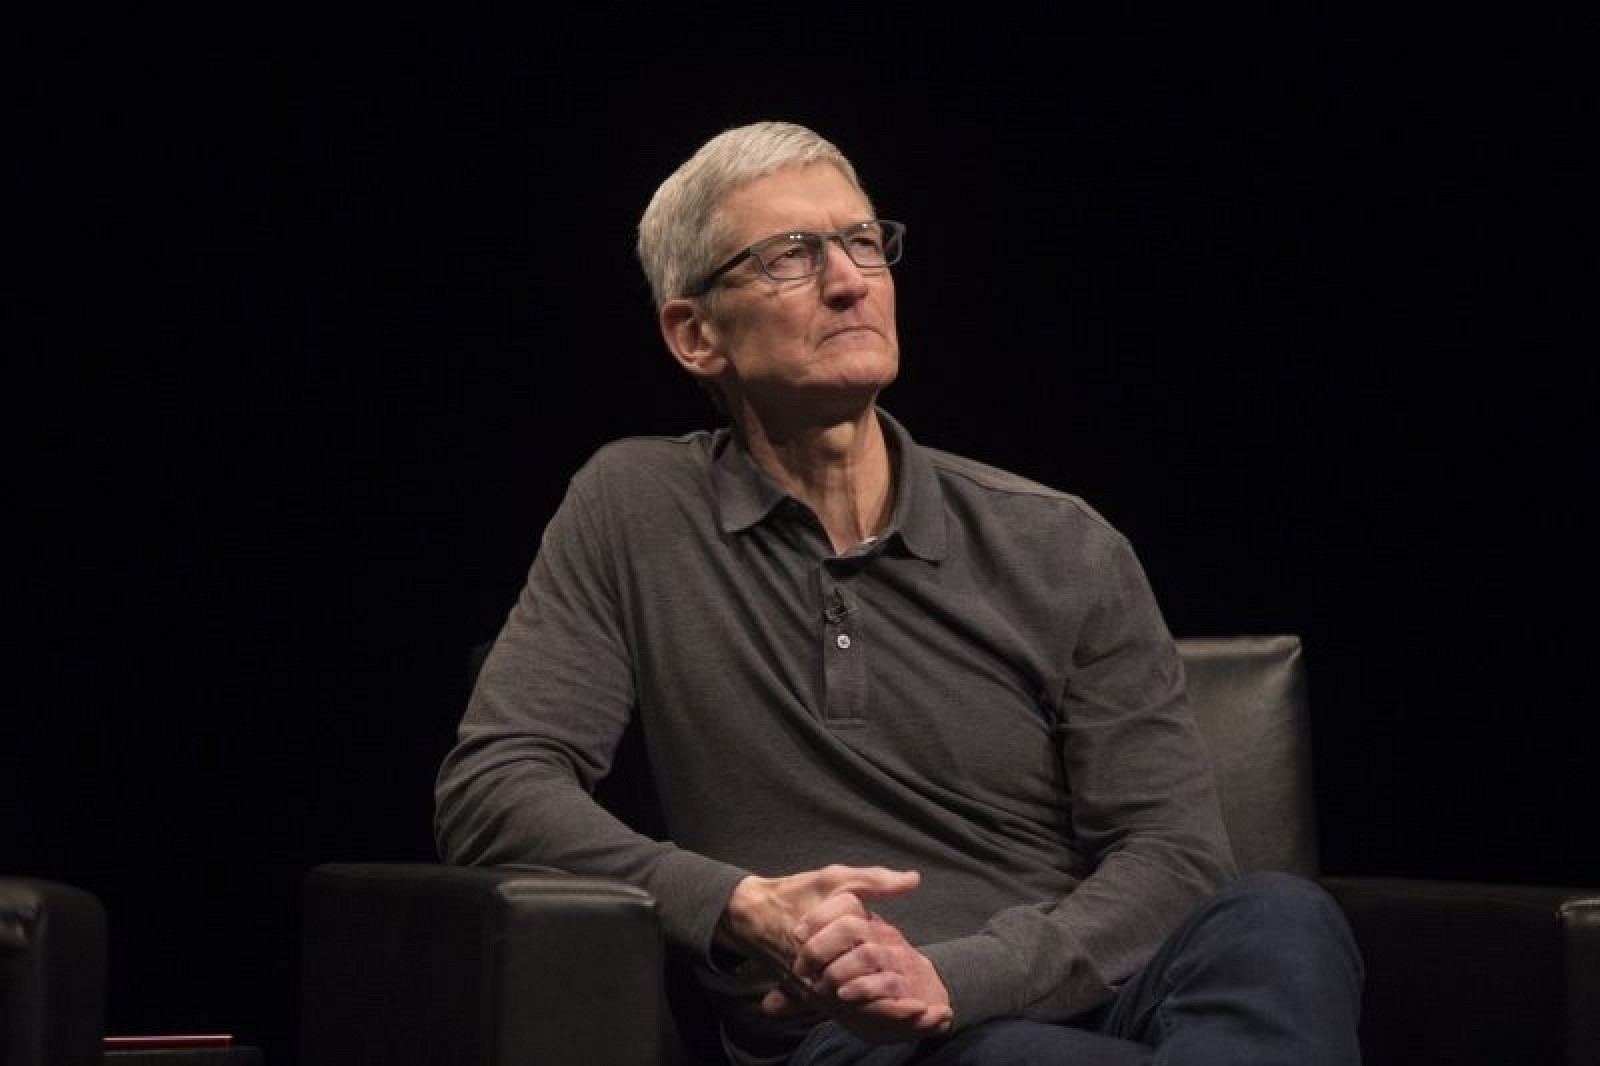 Apple CEO Tim Cook Speaks on Diversity and Inclusion at ...